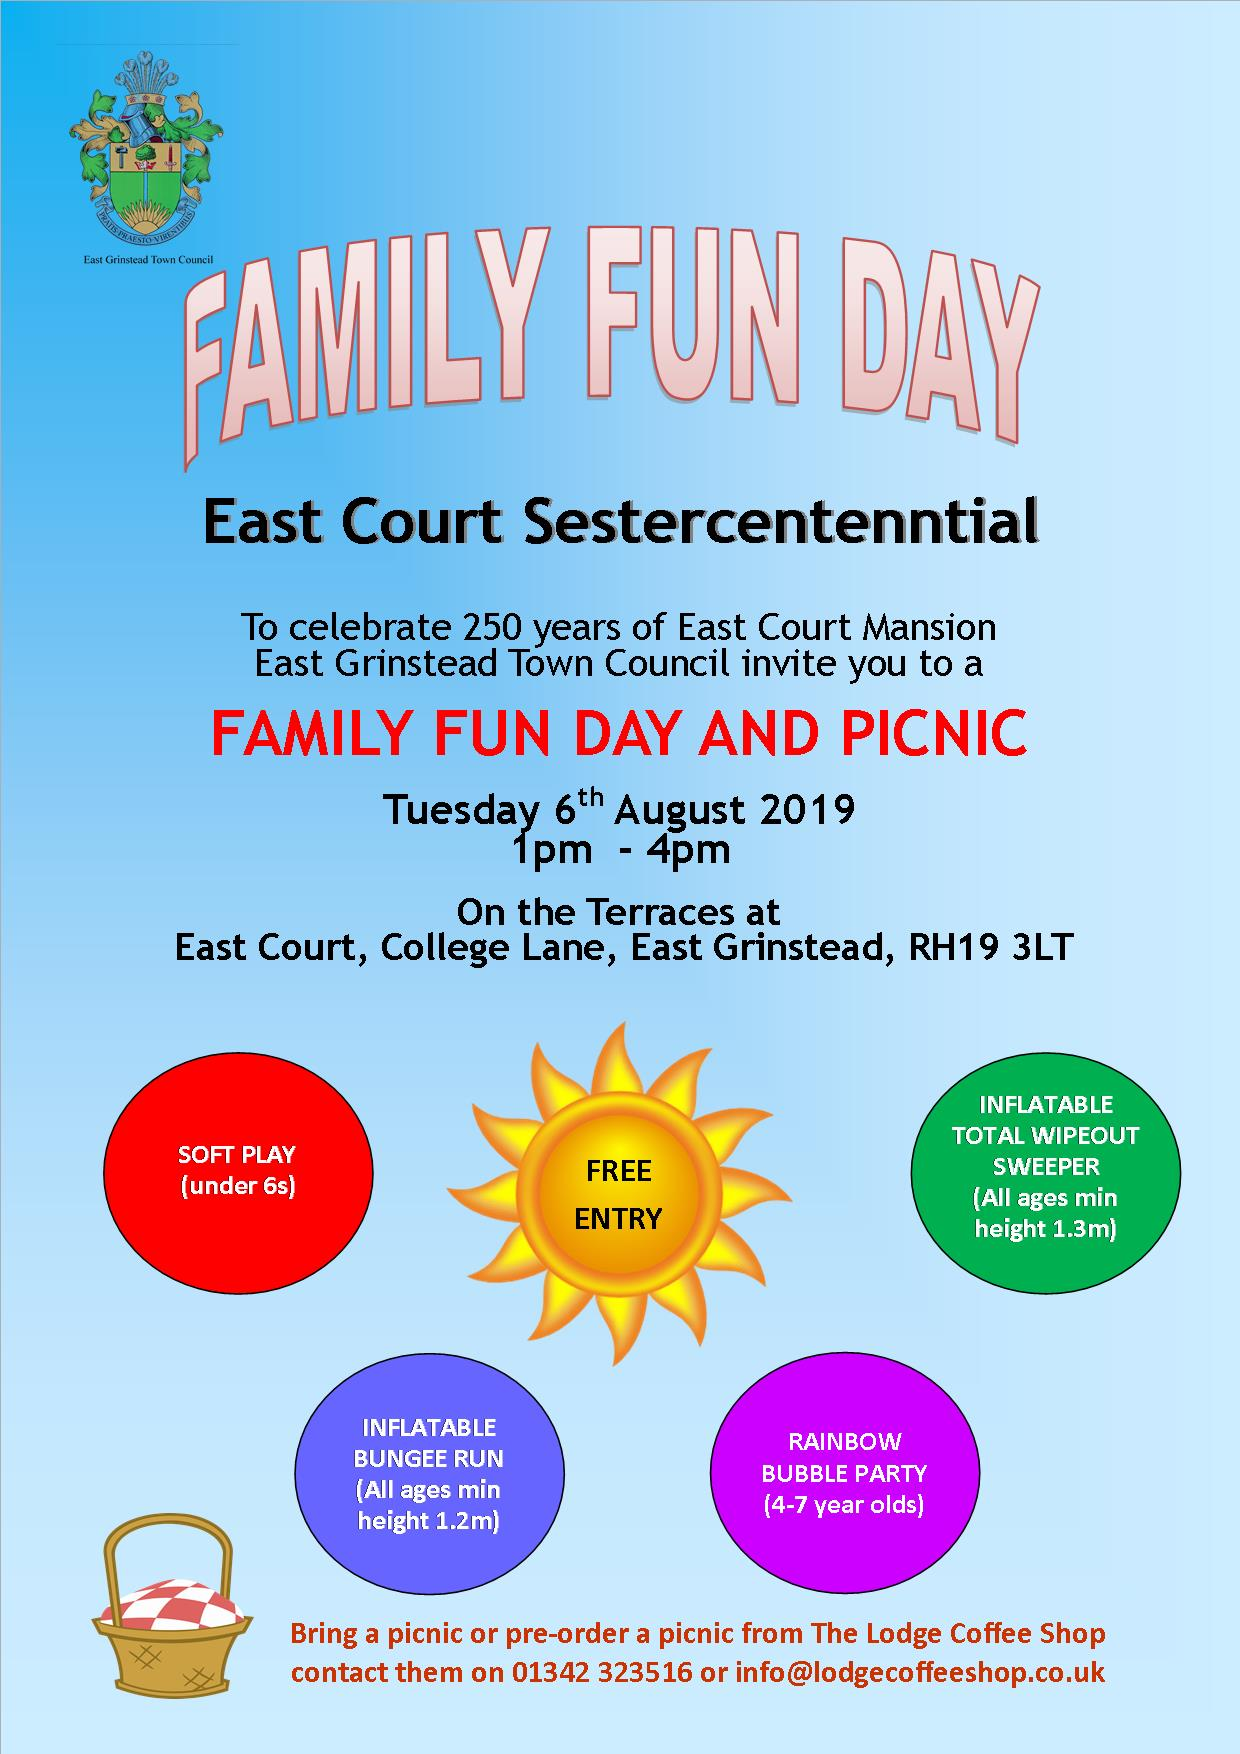 East Grinstead Town Council News; Family Fun Day